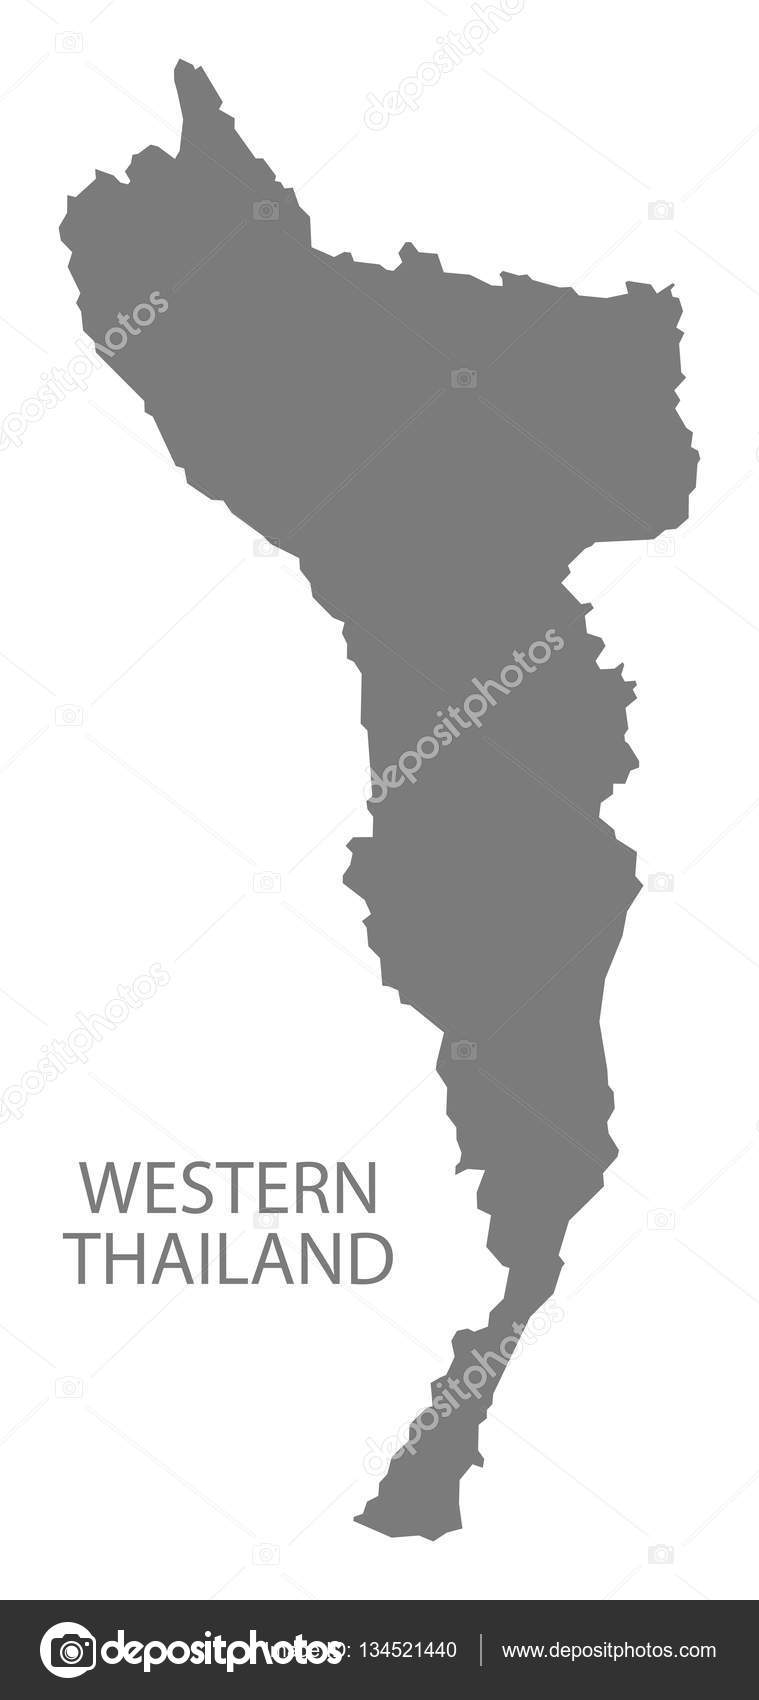 Western Map Of Thailand on map of western australia, map of western europe region, map of western netherlands, map of western usa, map of western haiti, map of western central africa, map of western syria, map of western arabia, map of western israel, map of western france, map of western madagascar, map of western world, map of western central america, map of western indian ocean, map of western russia, map of western new guinea, map of western united states of america, map of western europe 2012, map of western italy, map of western west africa,